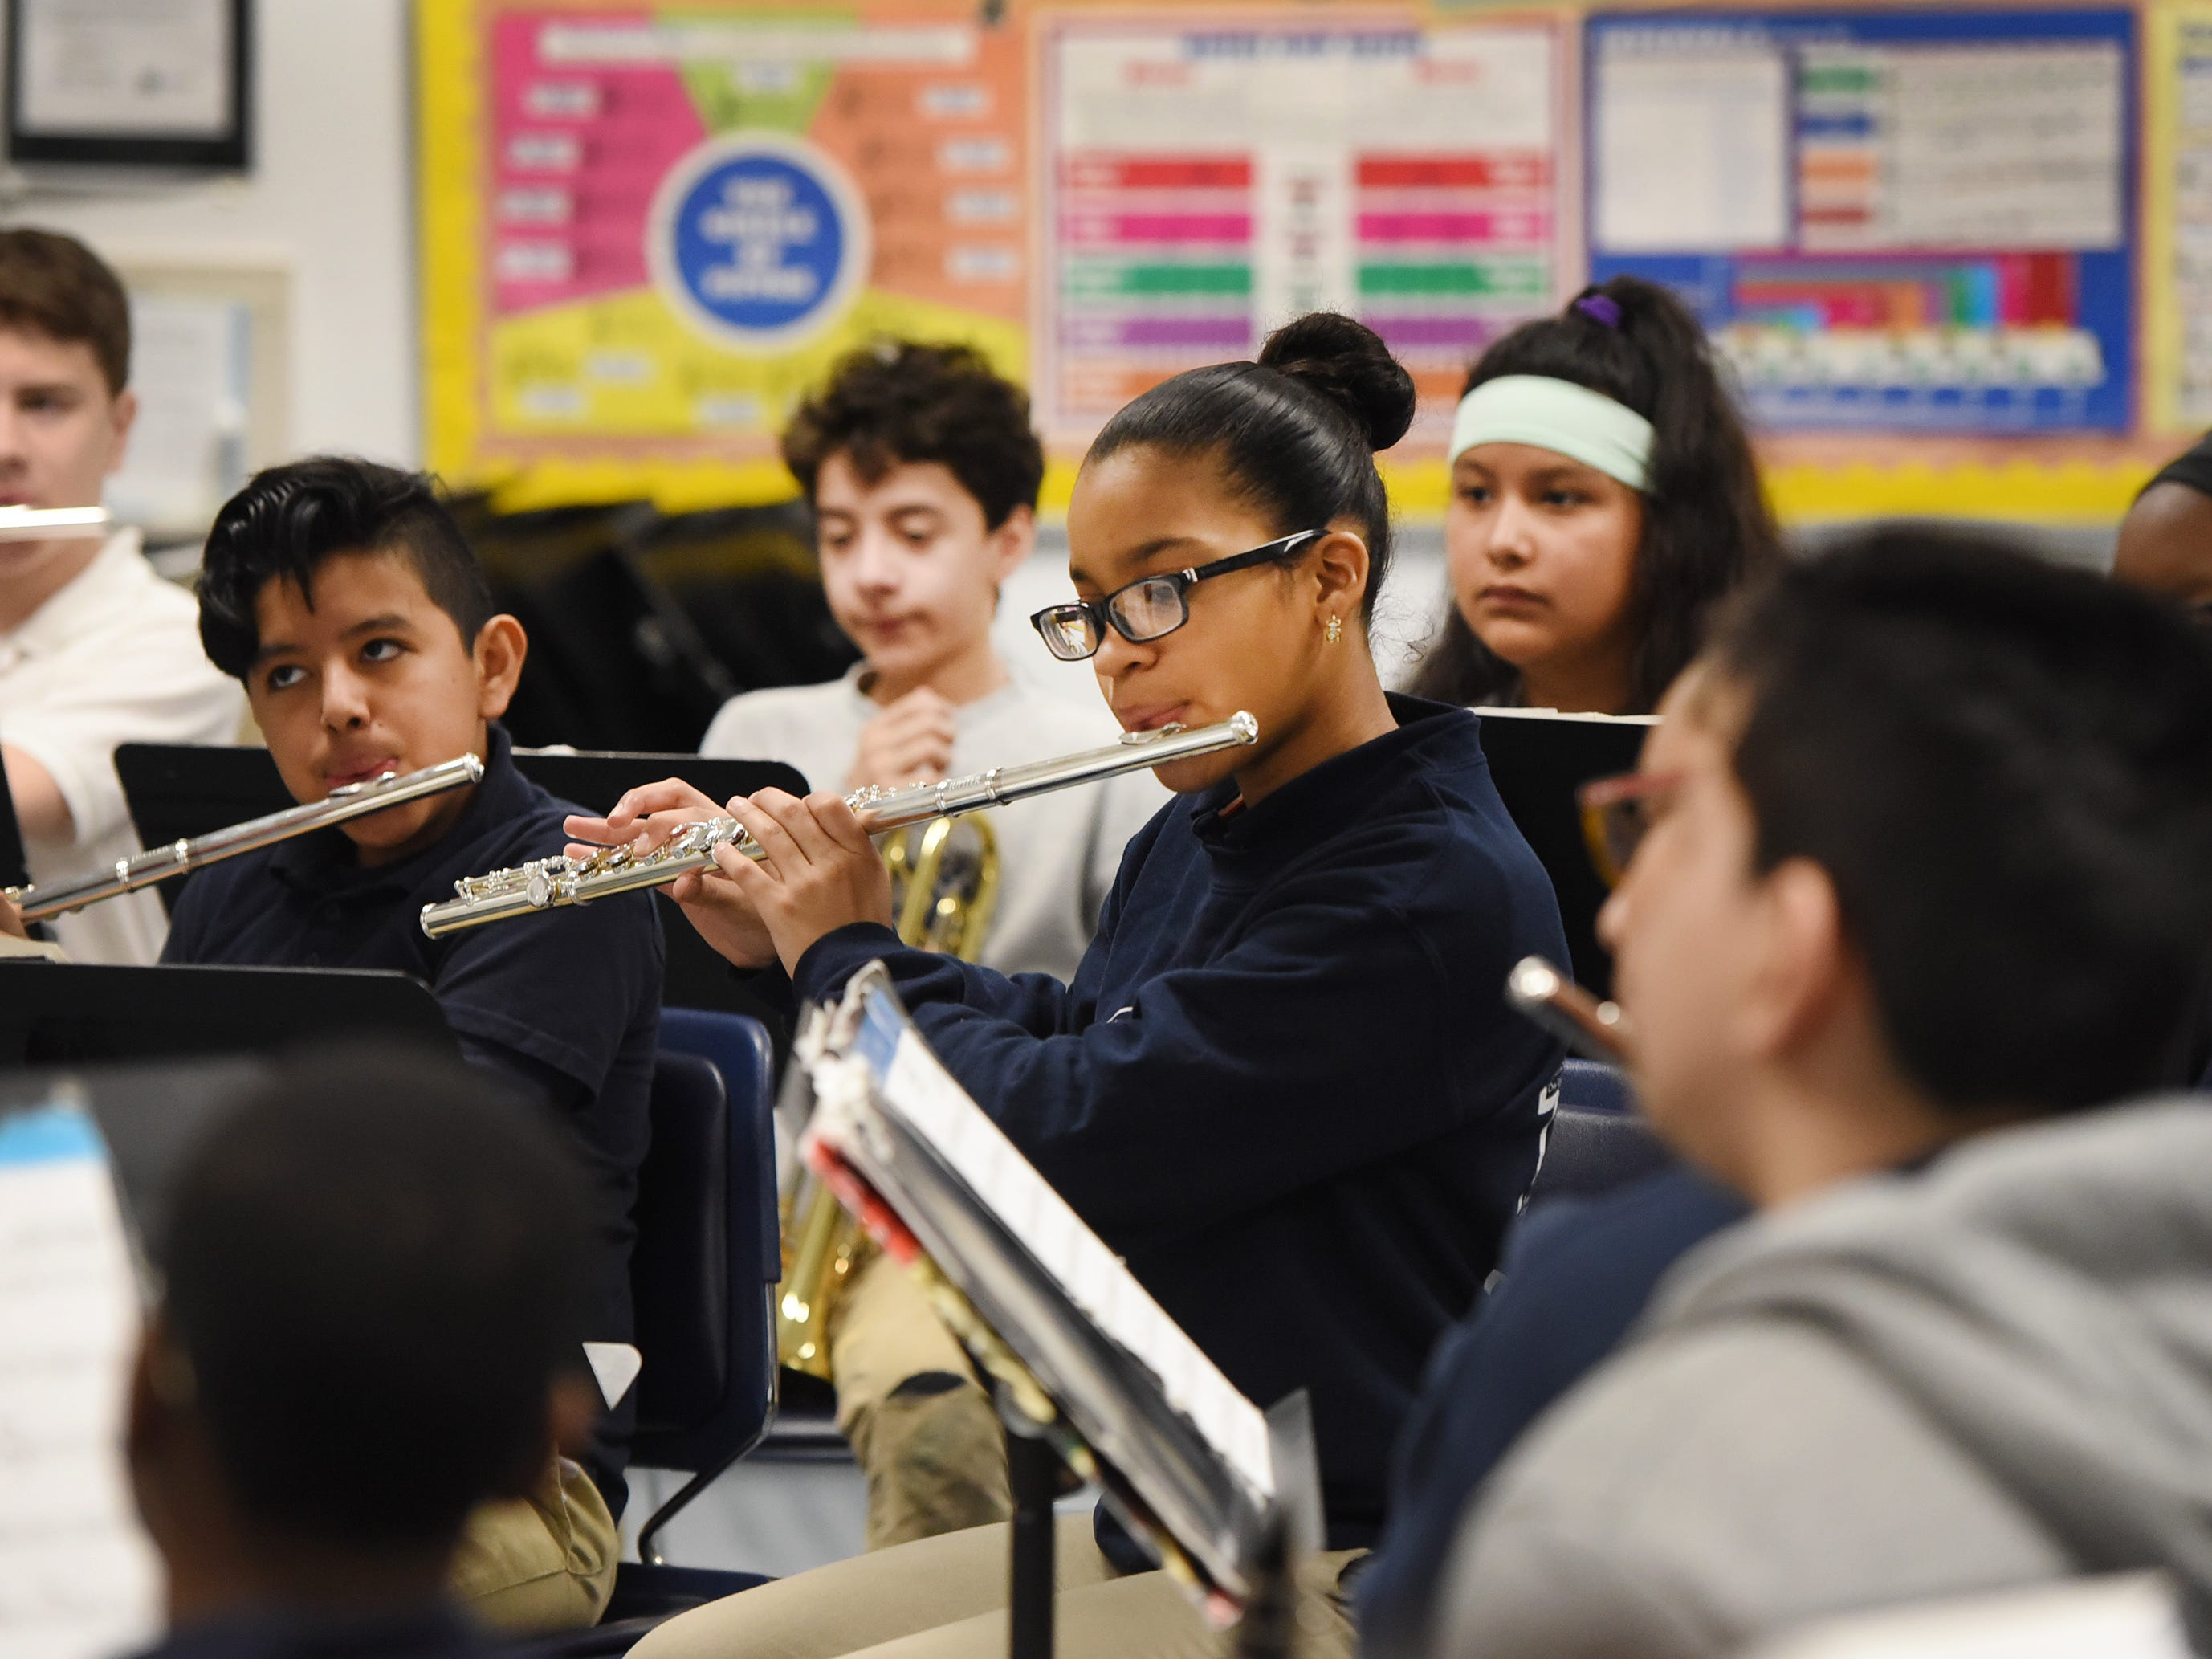 Students practice led by the Band Director Nancy Horowitz during a music class at School #24 in Paterson on 01/09/19.